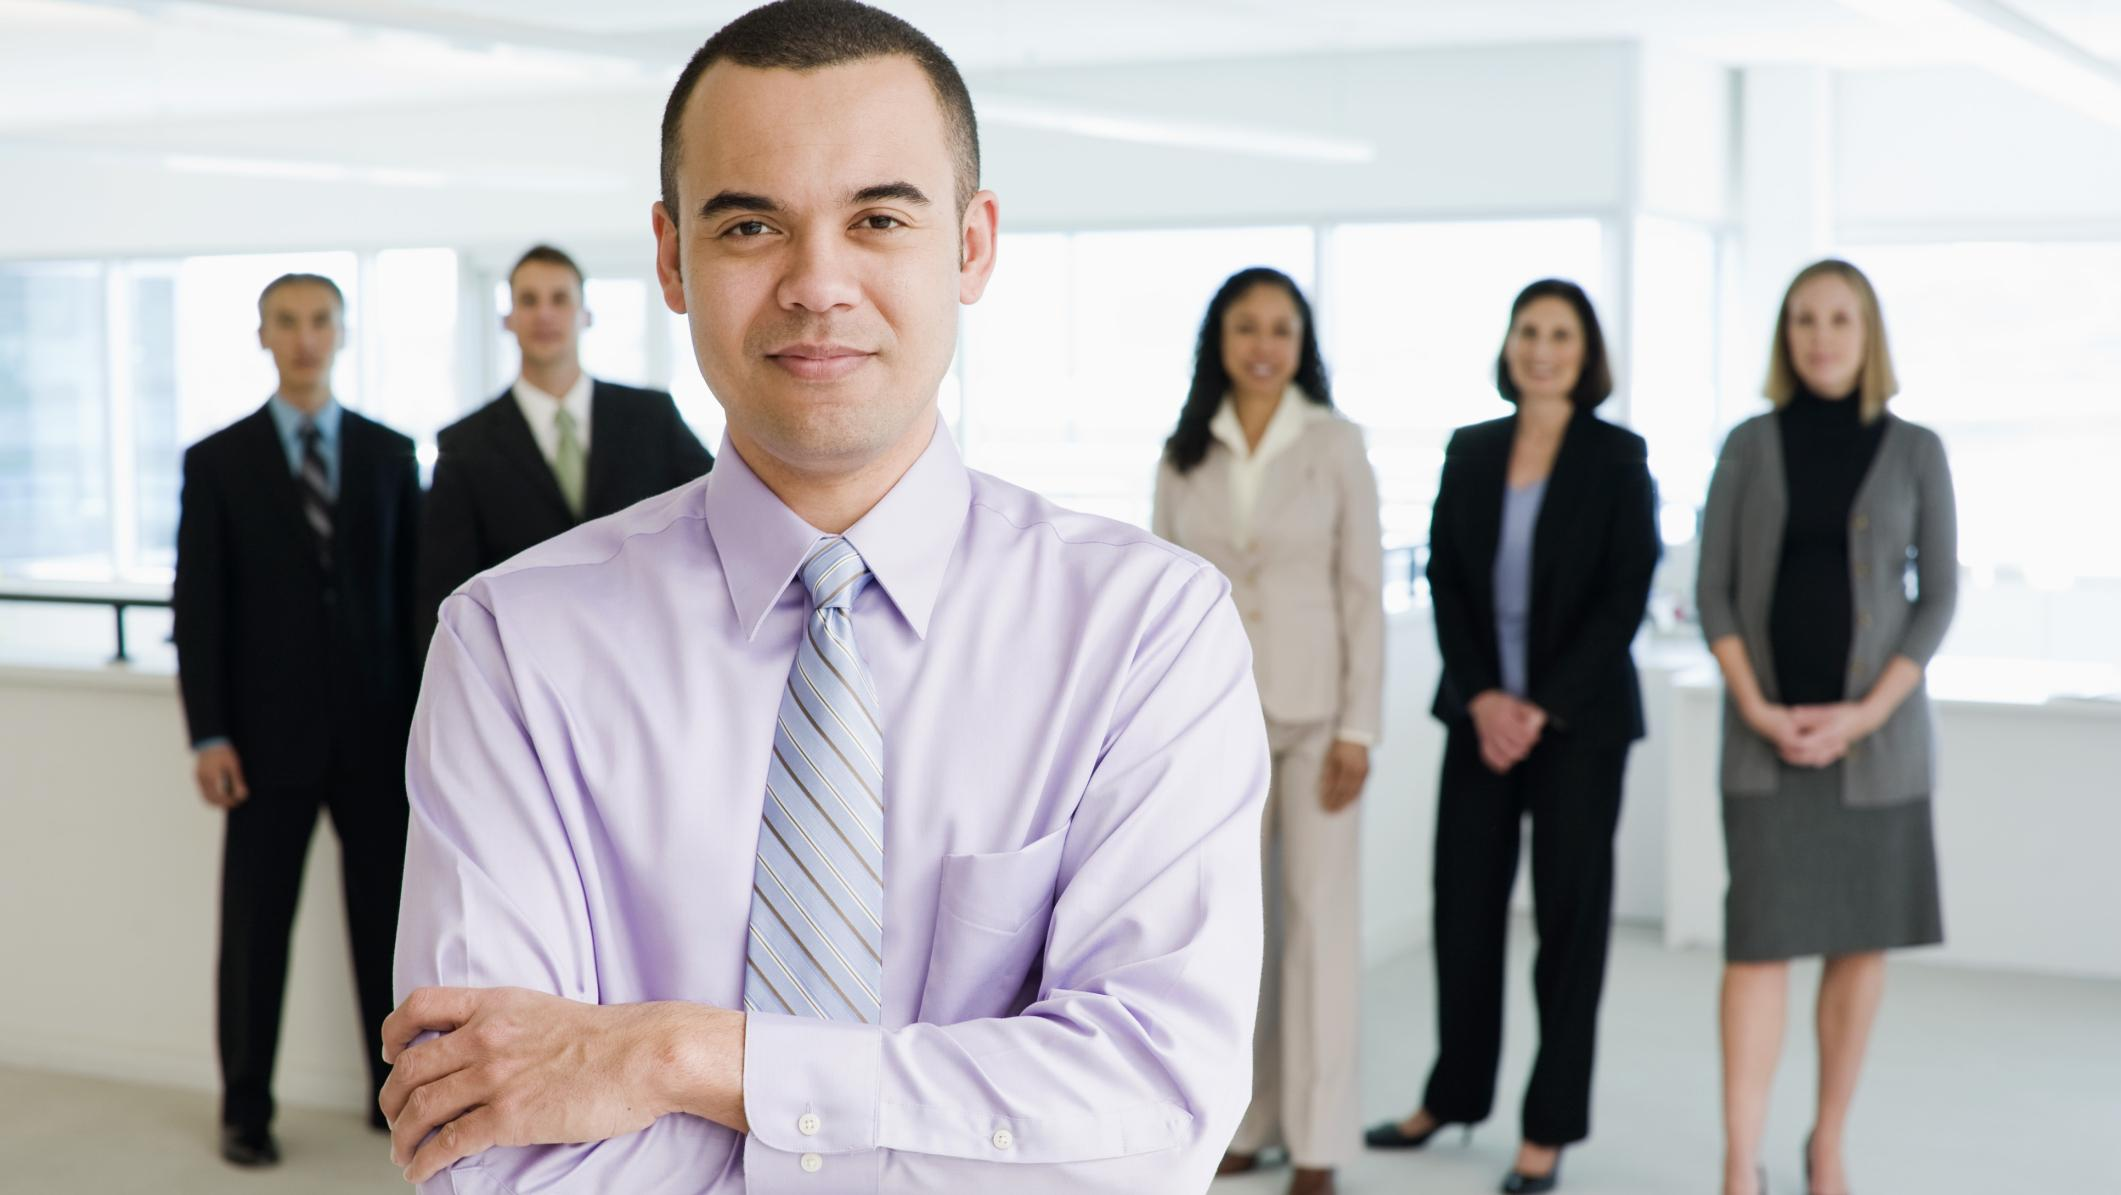 How leaders should manage their chain of command